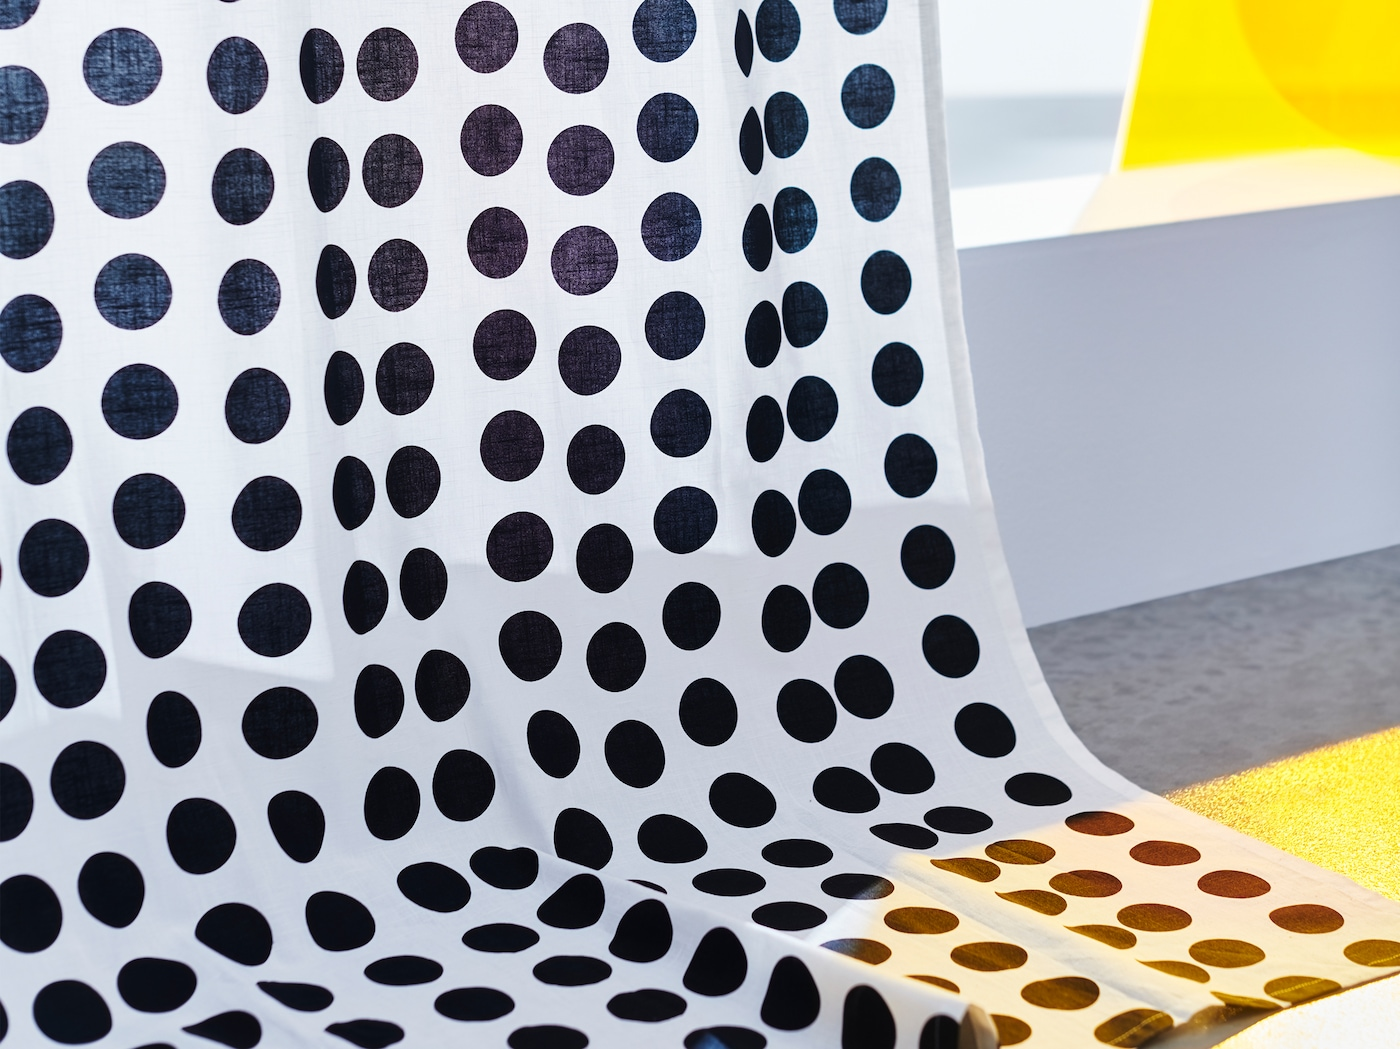 A close-up of KLARASTINA curtains with a pattern of black polka dots on a white background.